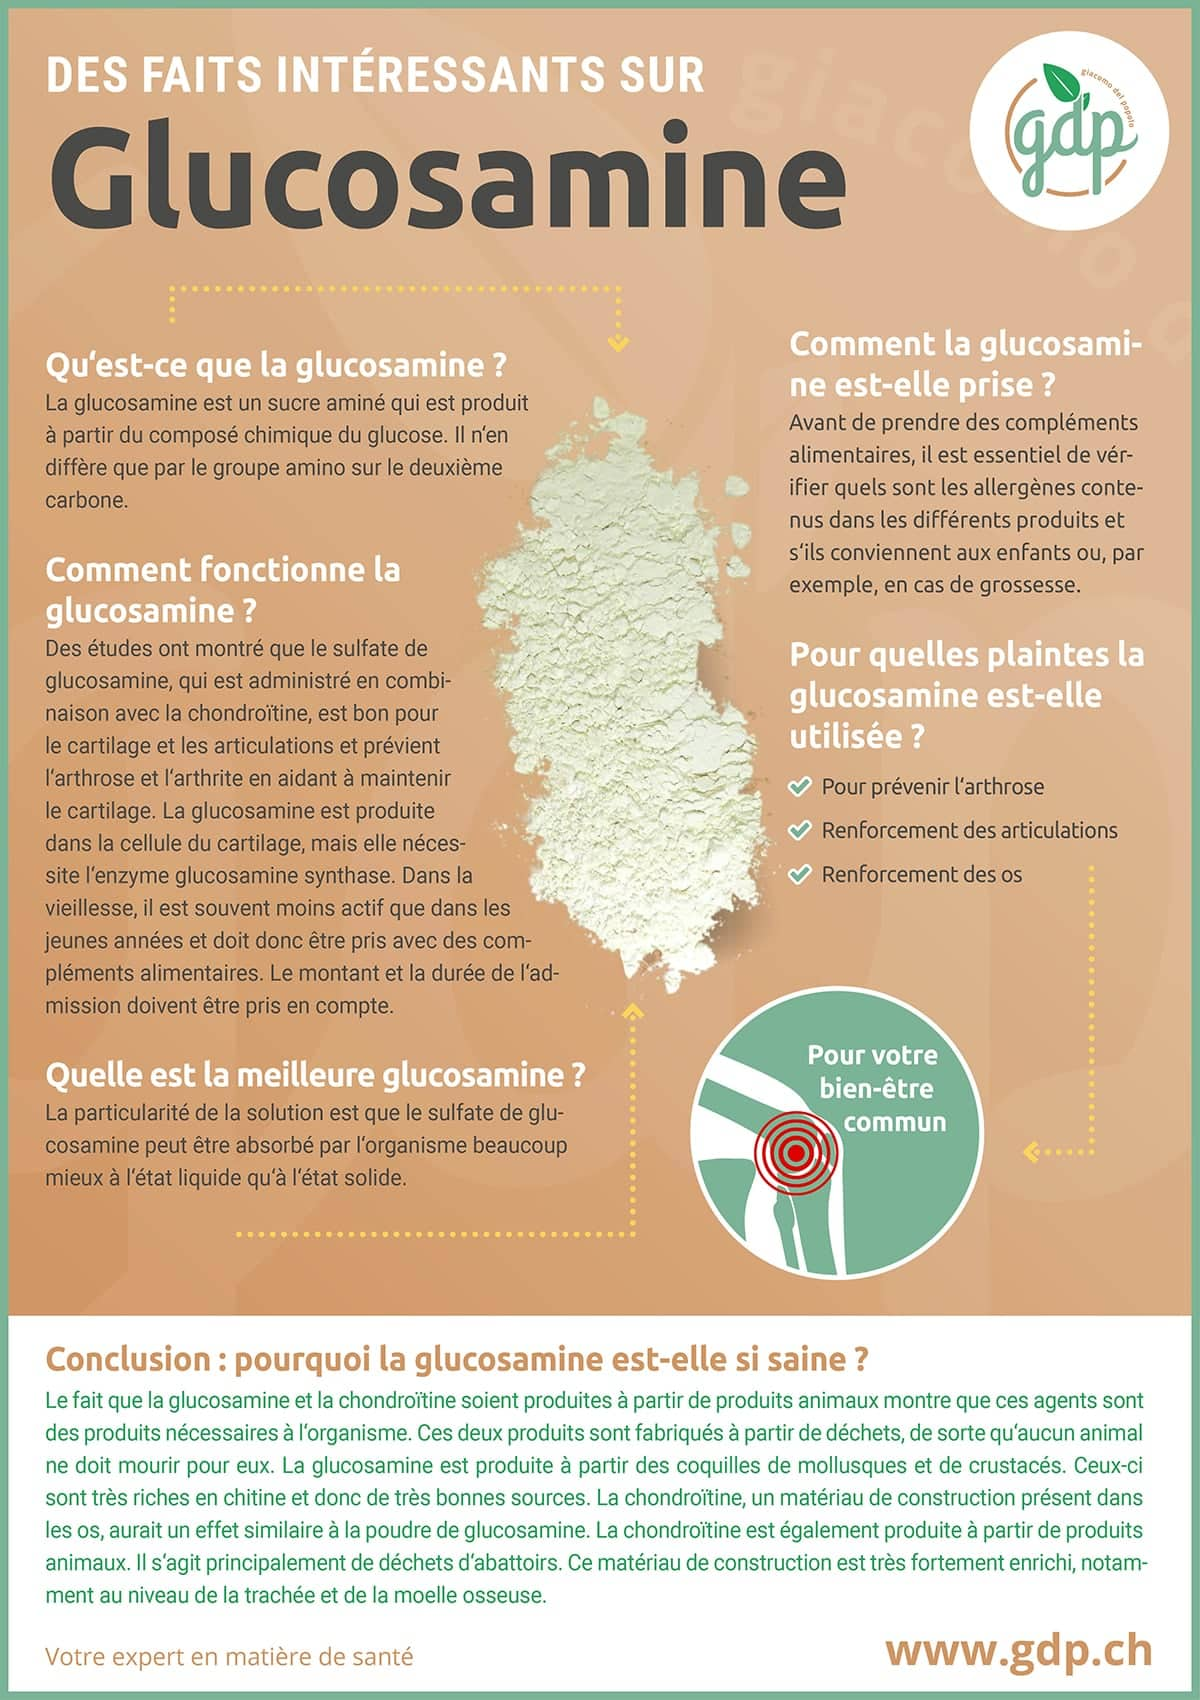 gdp Graphique d'information Glucosamine